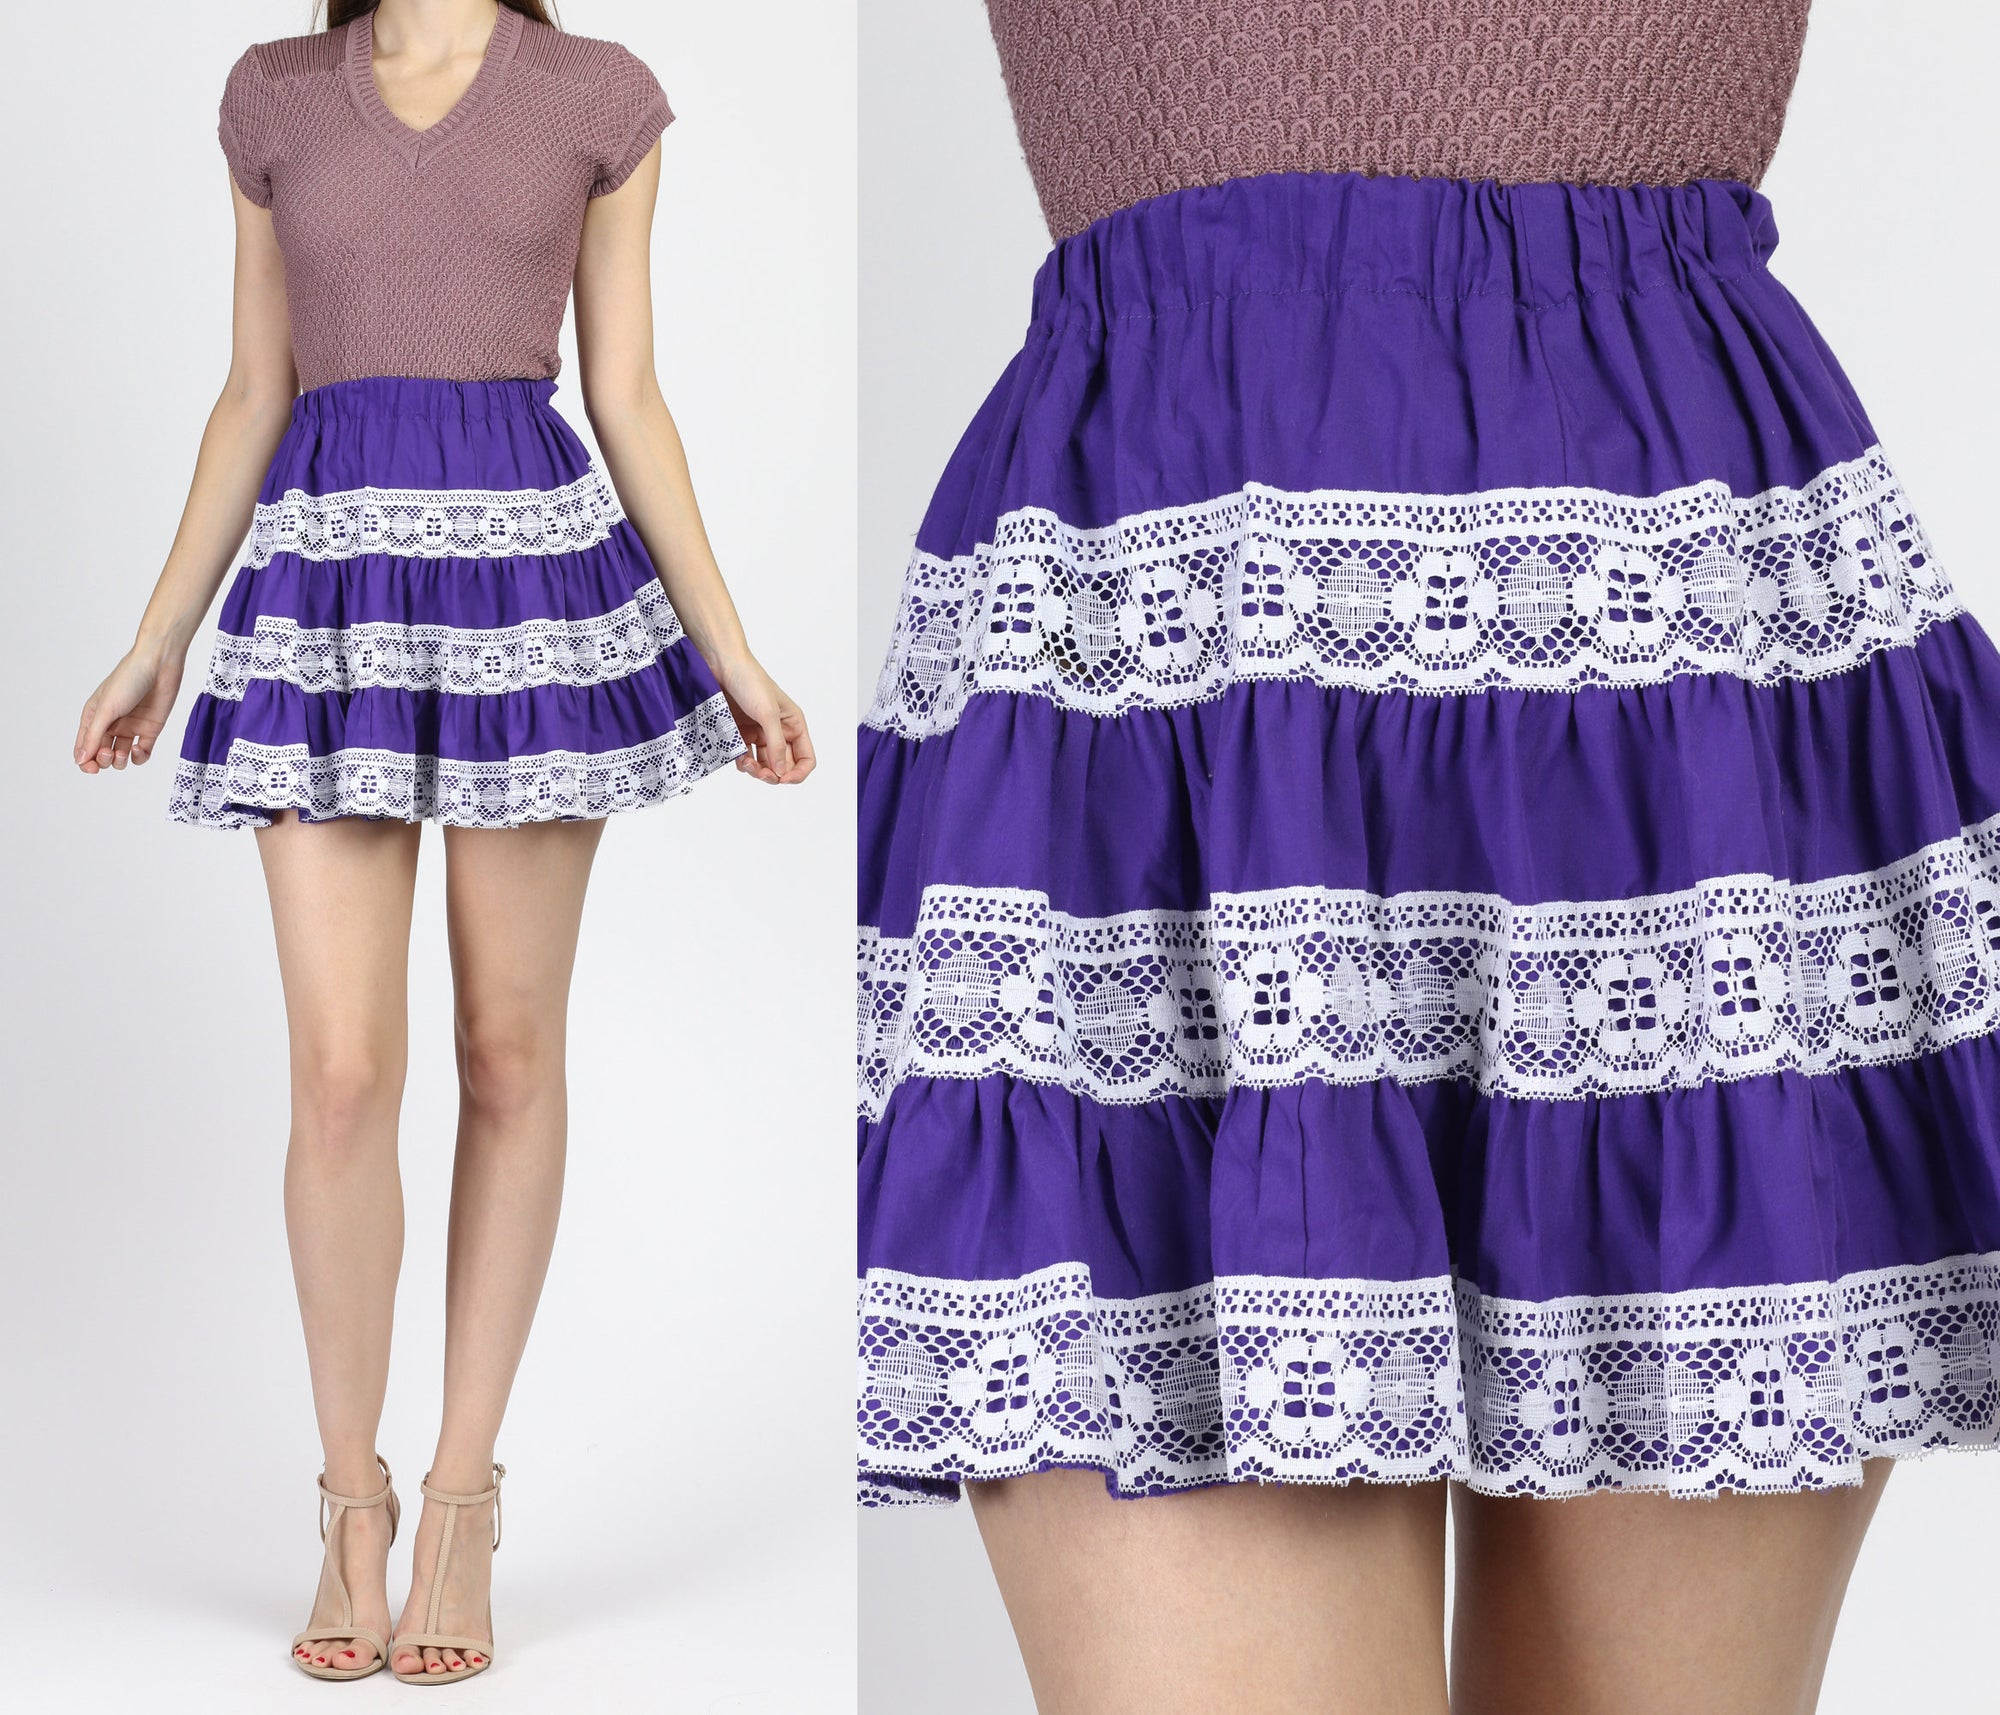 Vintage Purple & White Lace Rockabily Mini Skirt - XXS to XS